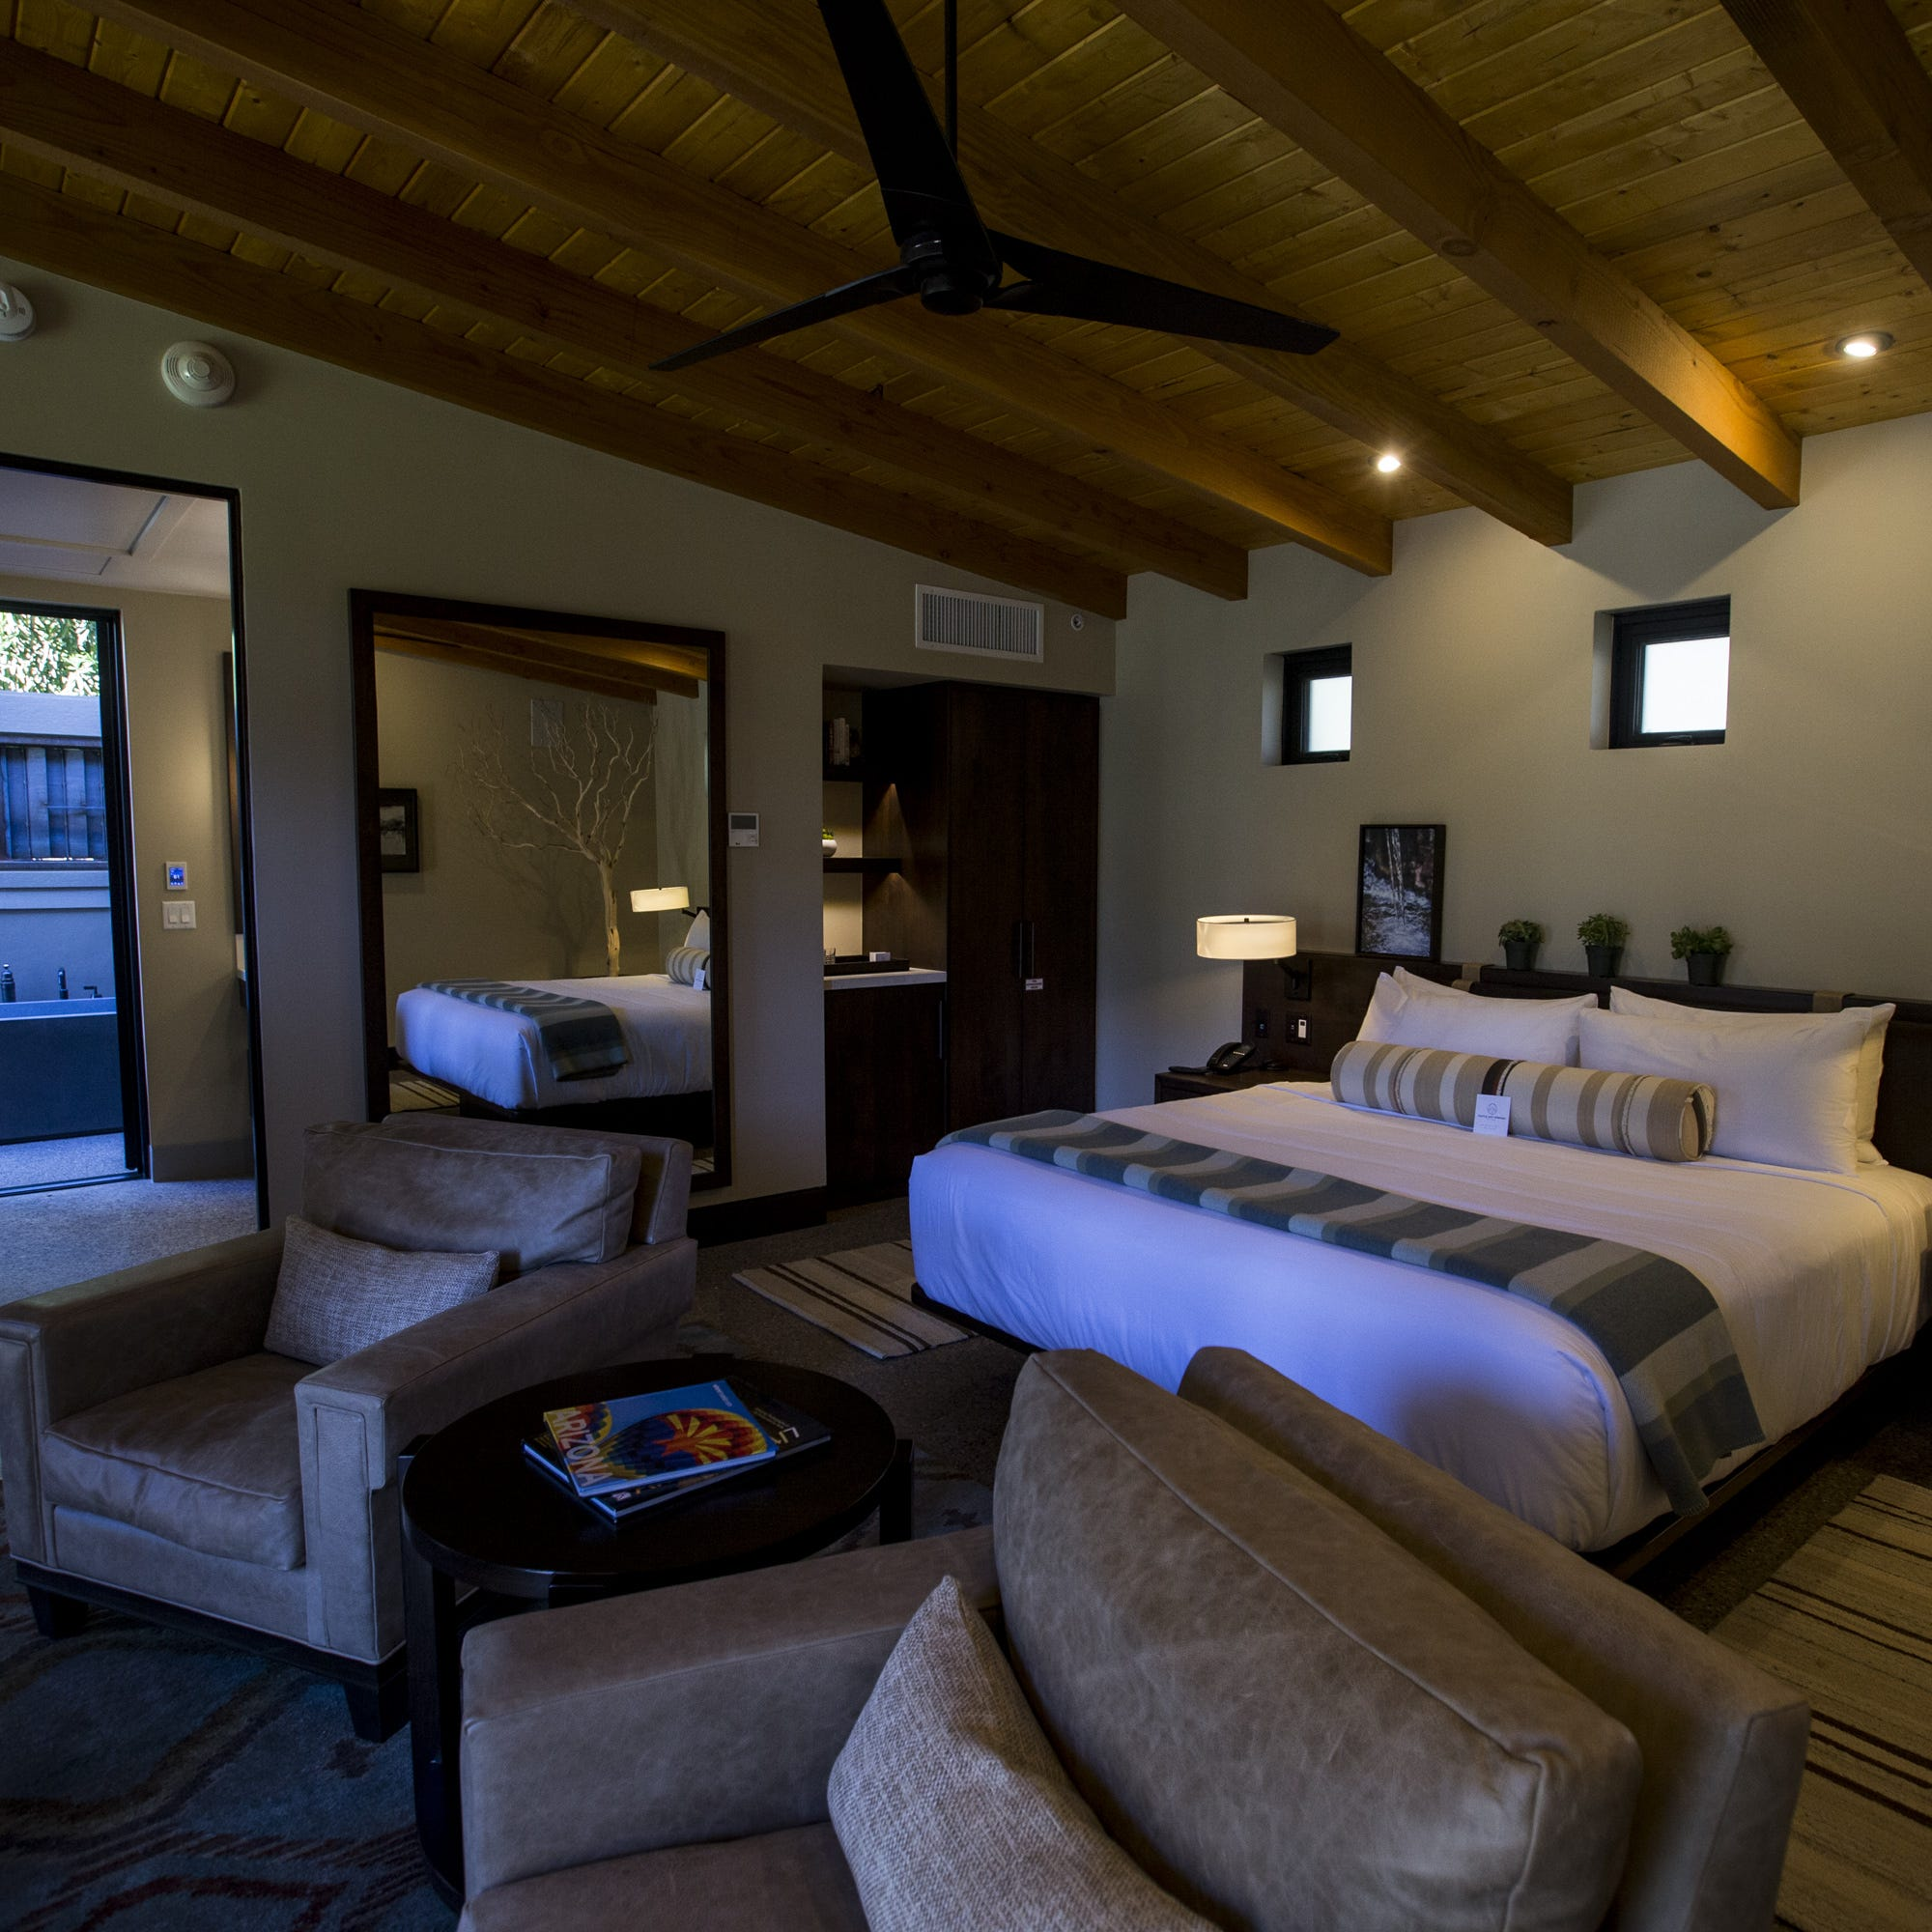 Sneak peek: Inside the new Castle Hot Springs Resort, opening in February